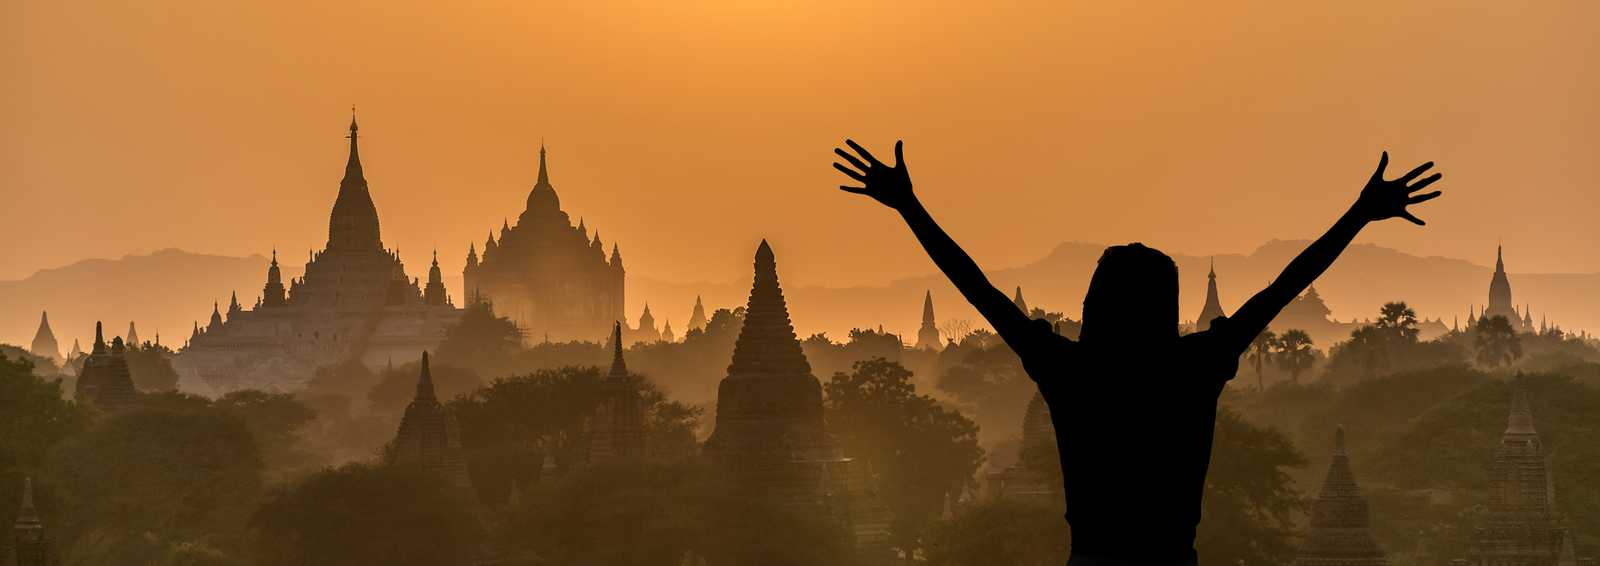 Myanmar Bagan Sunrise